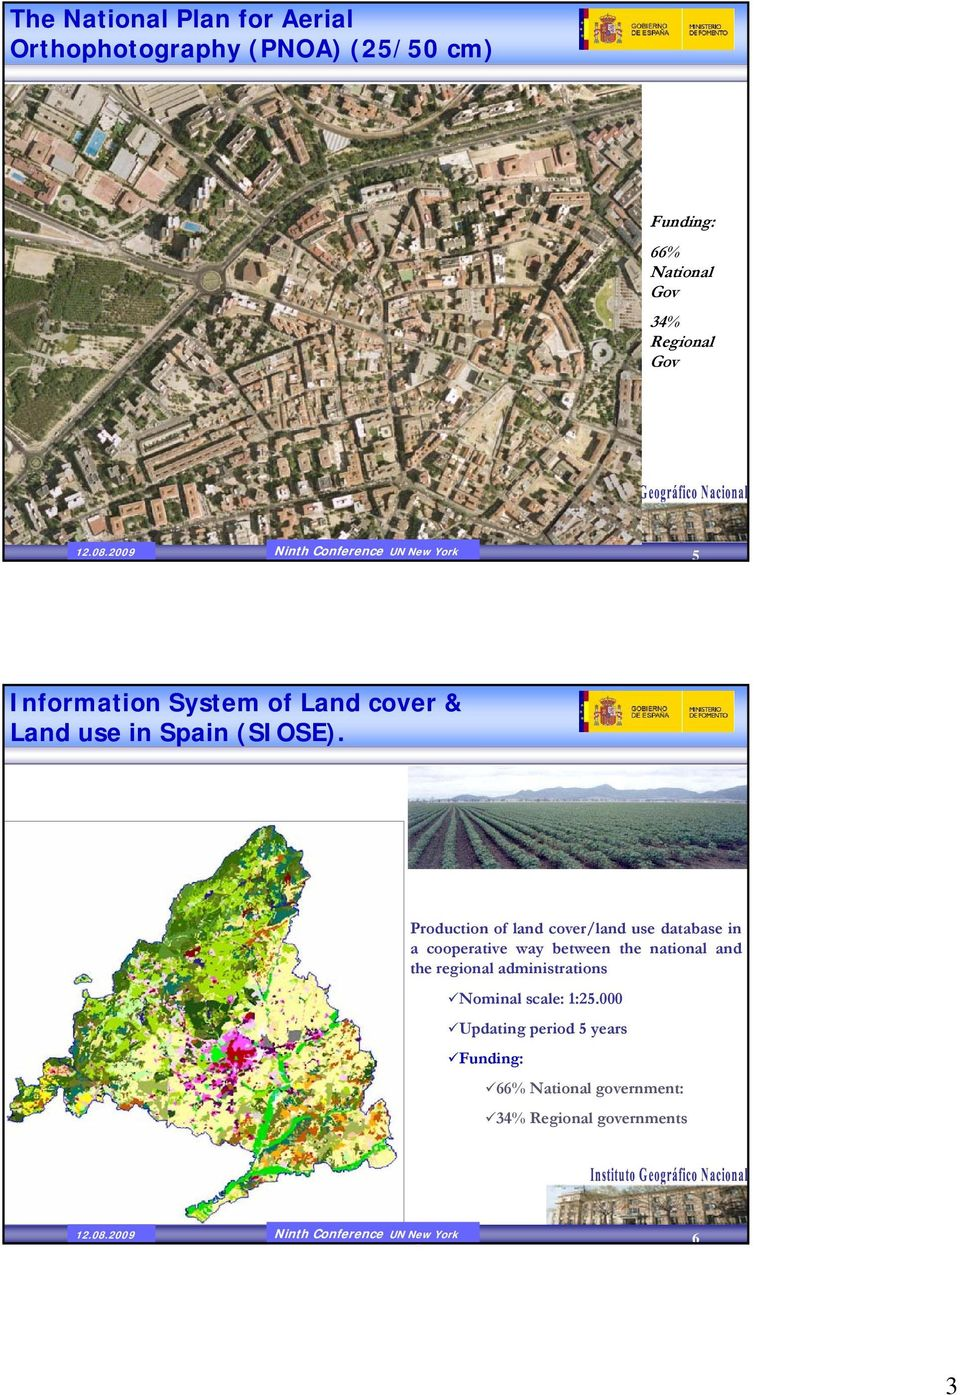 Production of land cover/land use database in a cooperative way between the national and the regional